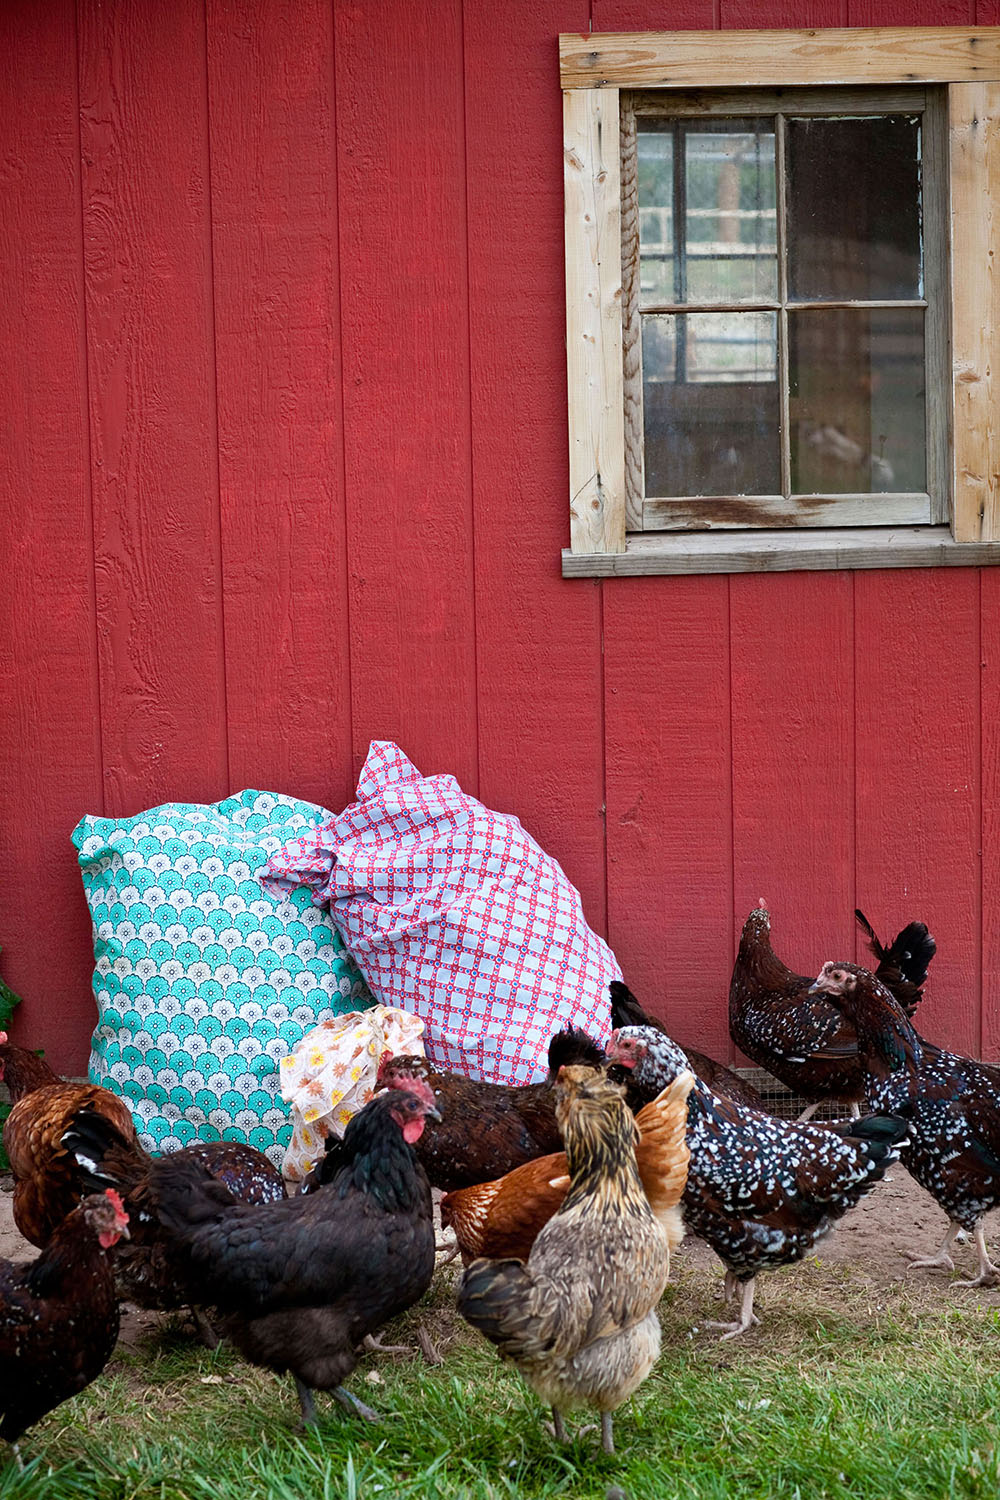 chickens-feedbags-lyons-farmette.jpg